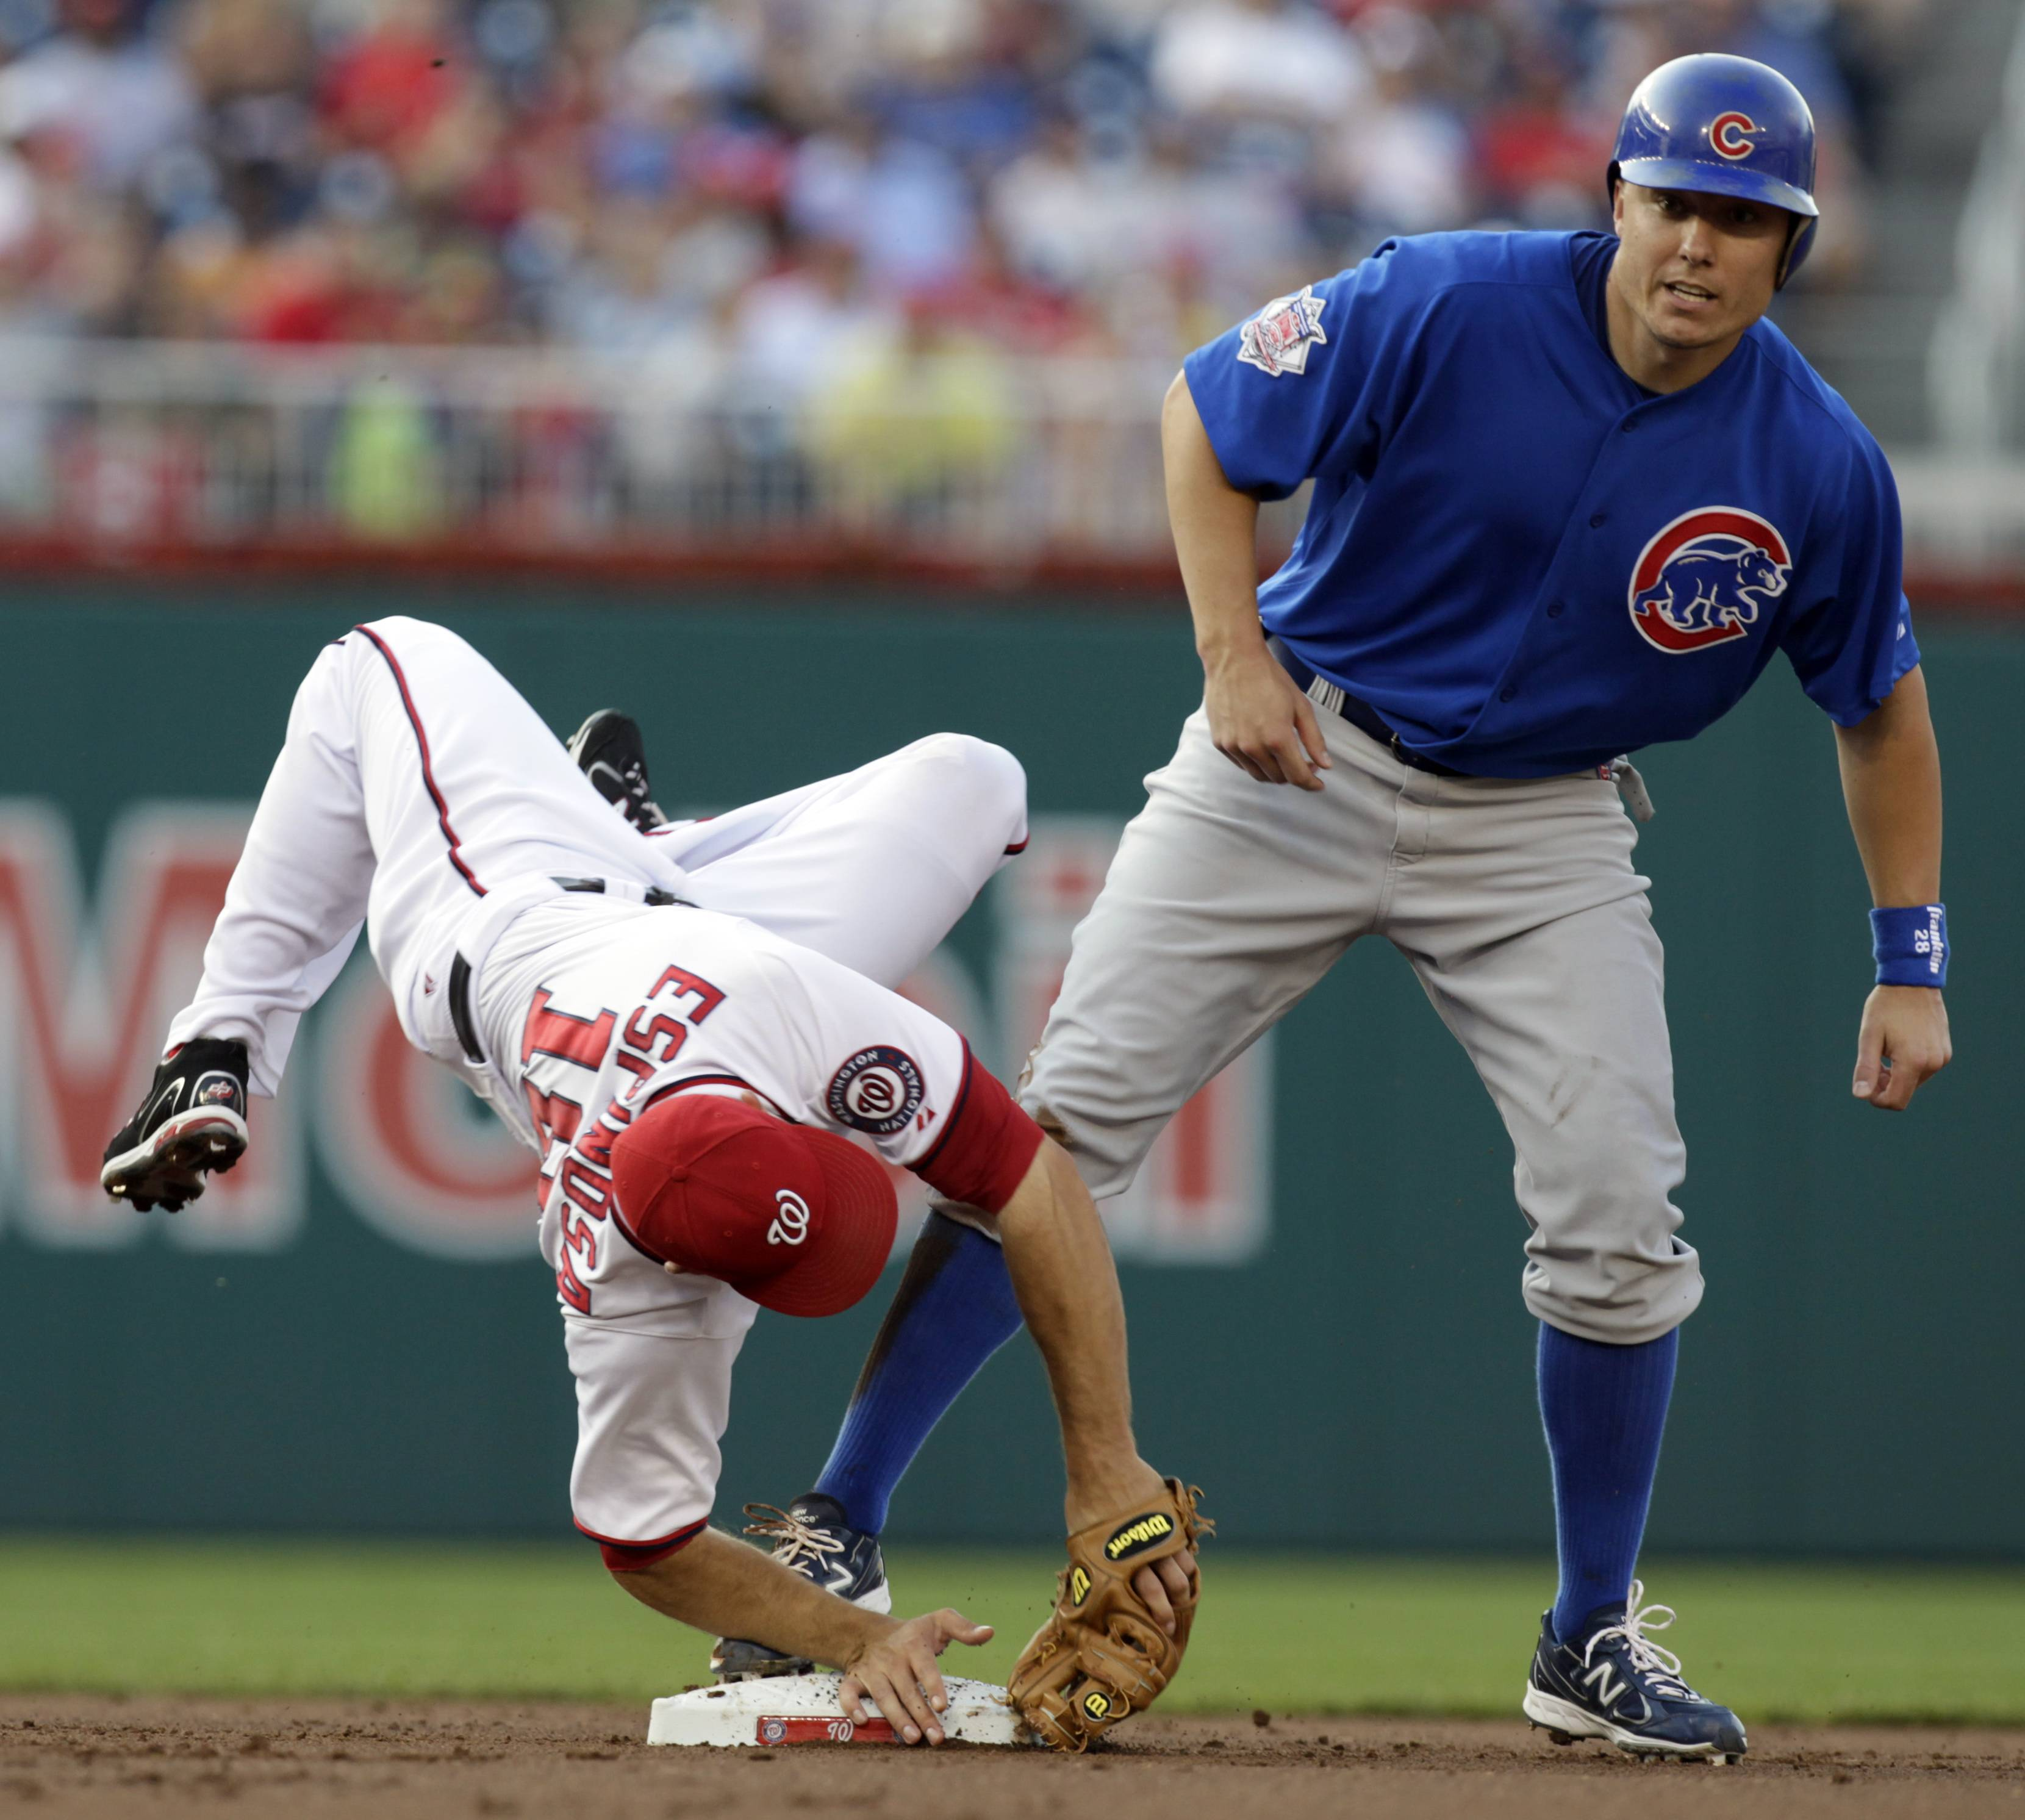 Washington Nationals second baseman Danny Espinosa is upended by the Cubs' Jeff Baker during the first inning at Nationals Park on Tuesday. Baker was out on the play.